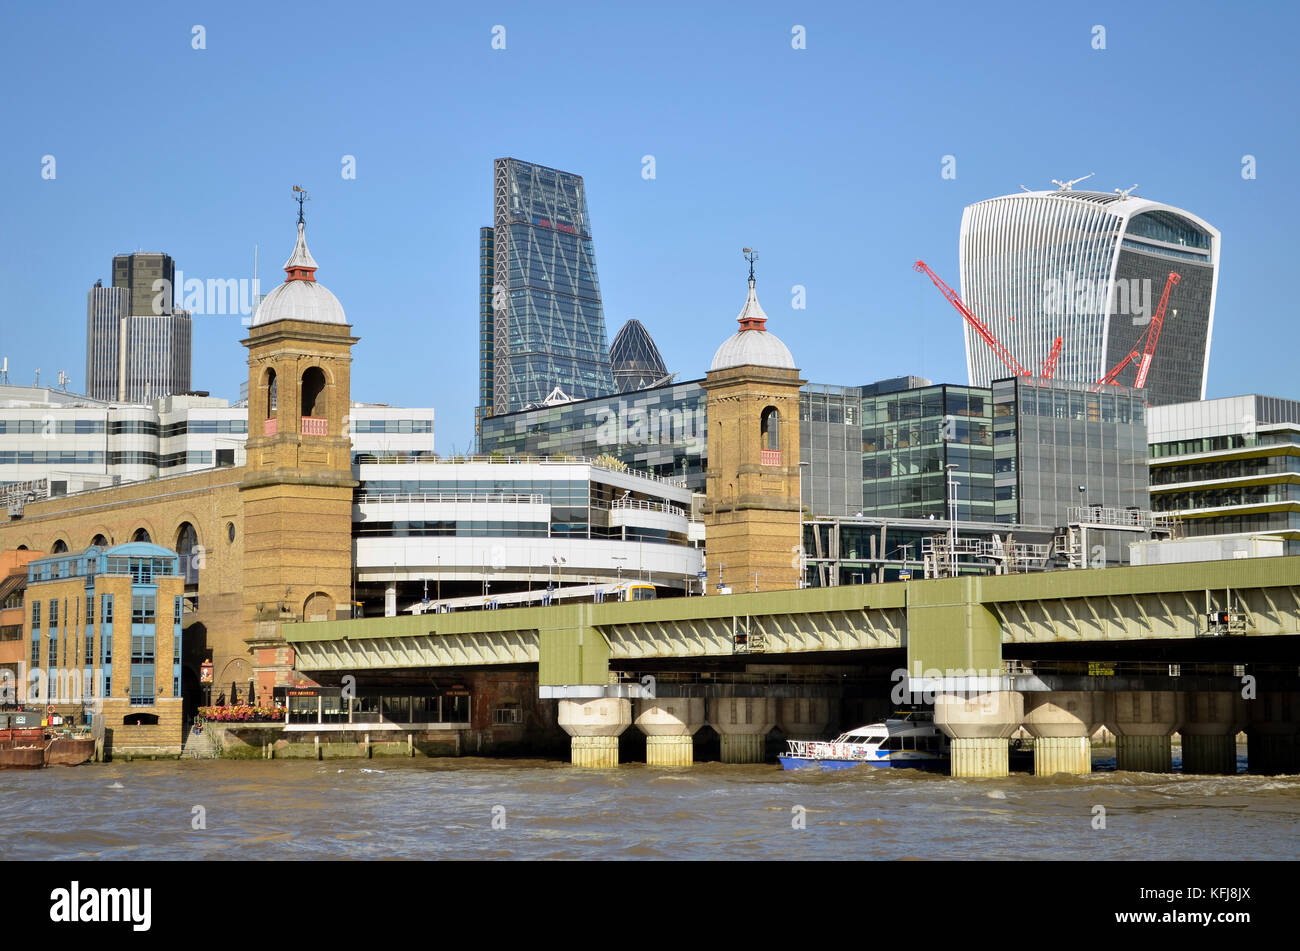 Cannon Street Station and Railway Bridge seen across the River Thames, London, UK. Tower 42, The Leadenhall Building, - Stock Image